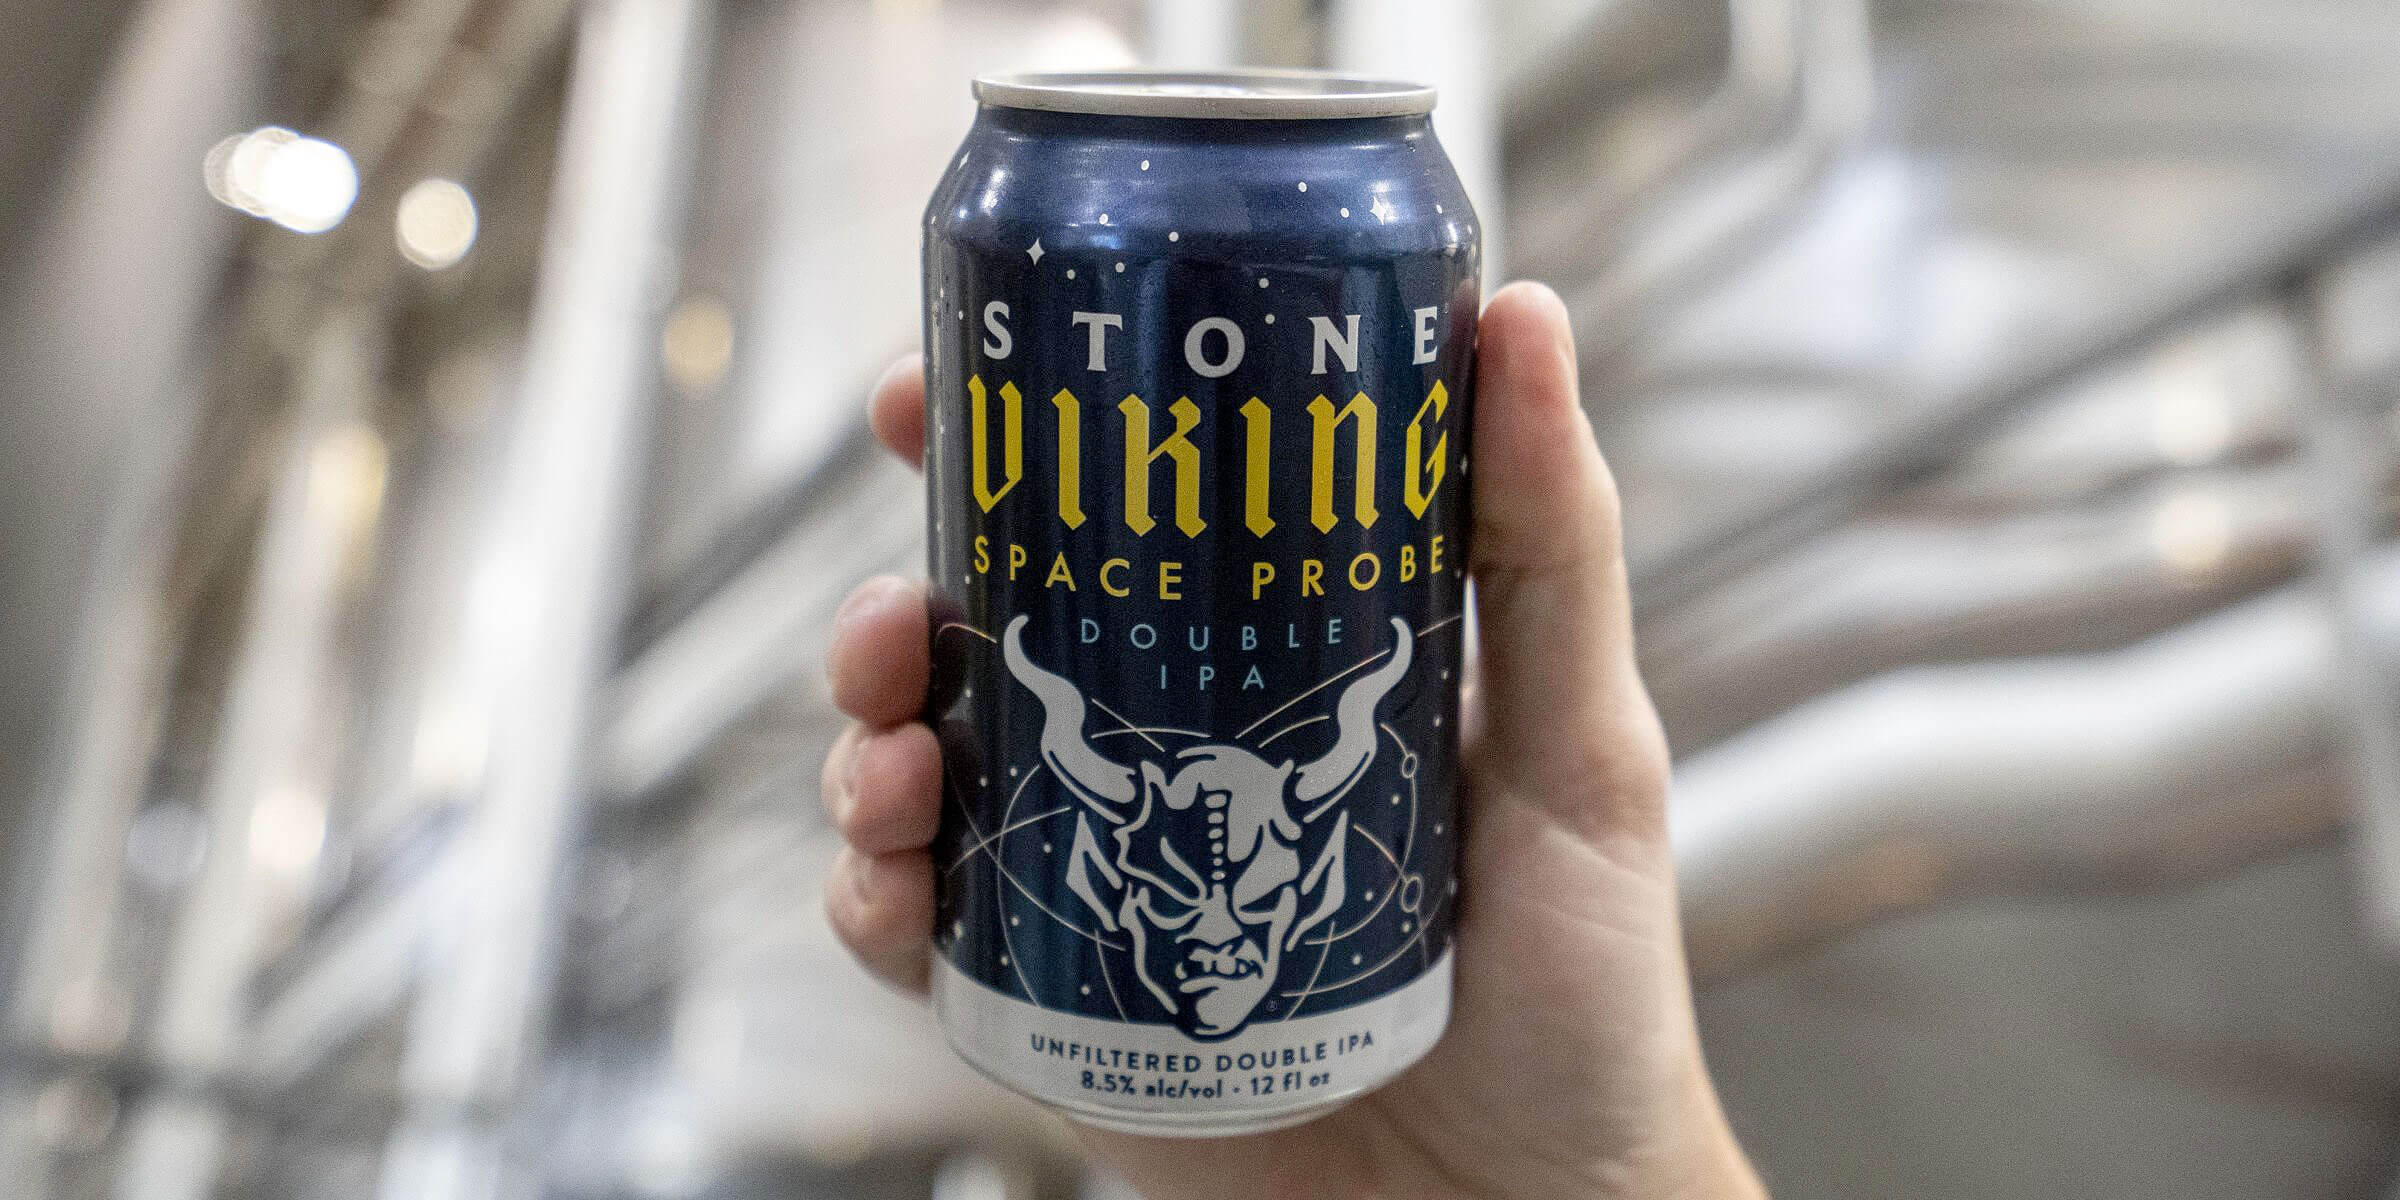 Stone Brewing launches Viking Space Probe Double IPA that boldly goes where no hazy brew has gone before with its combo of hops and Belgian Candi Sugar.